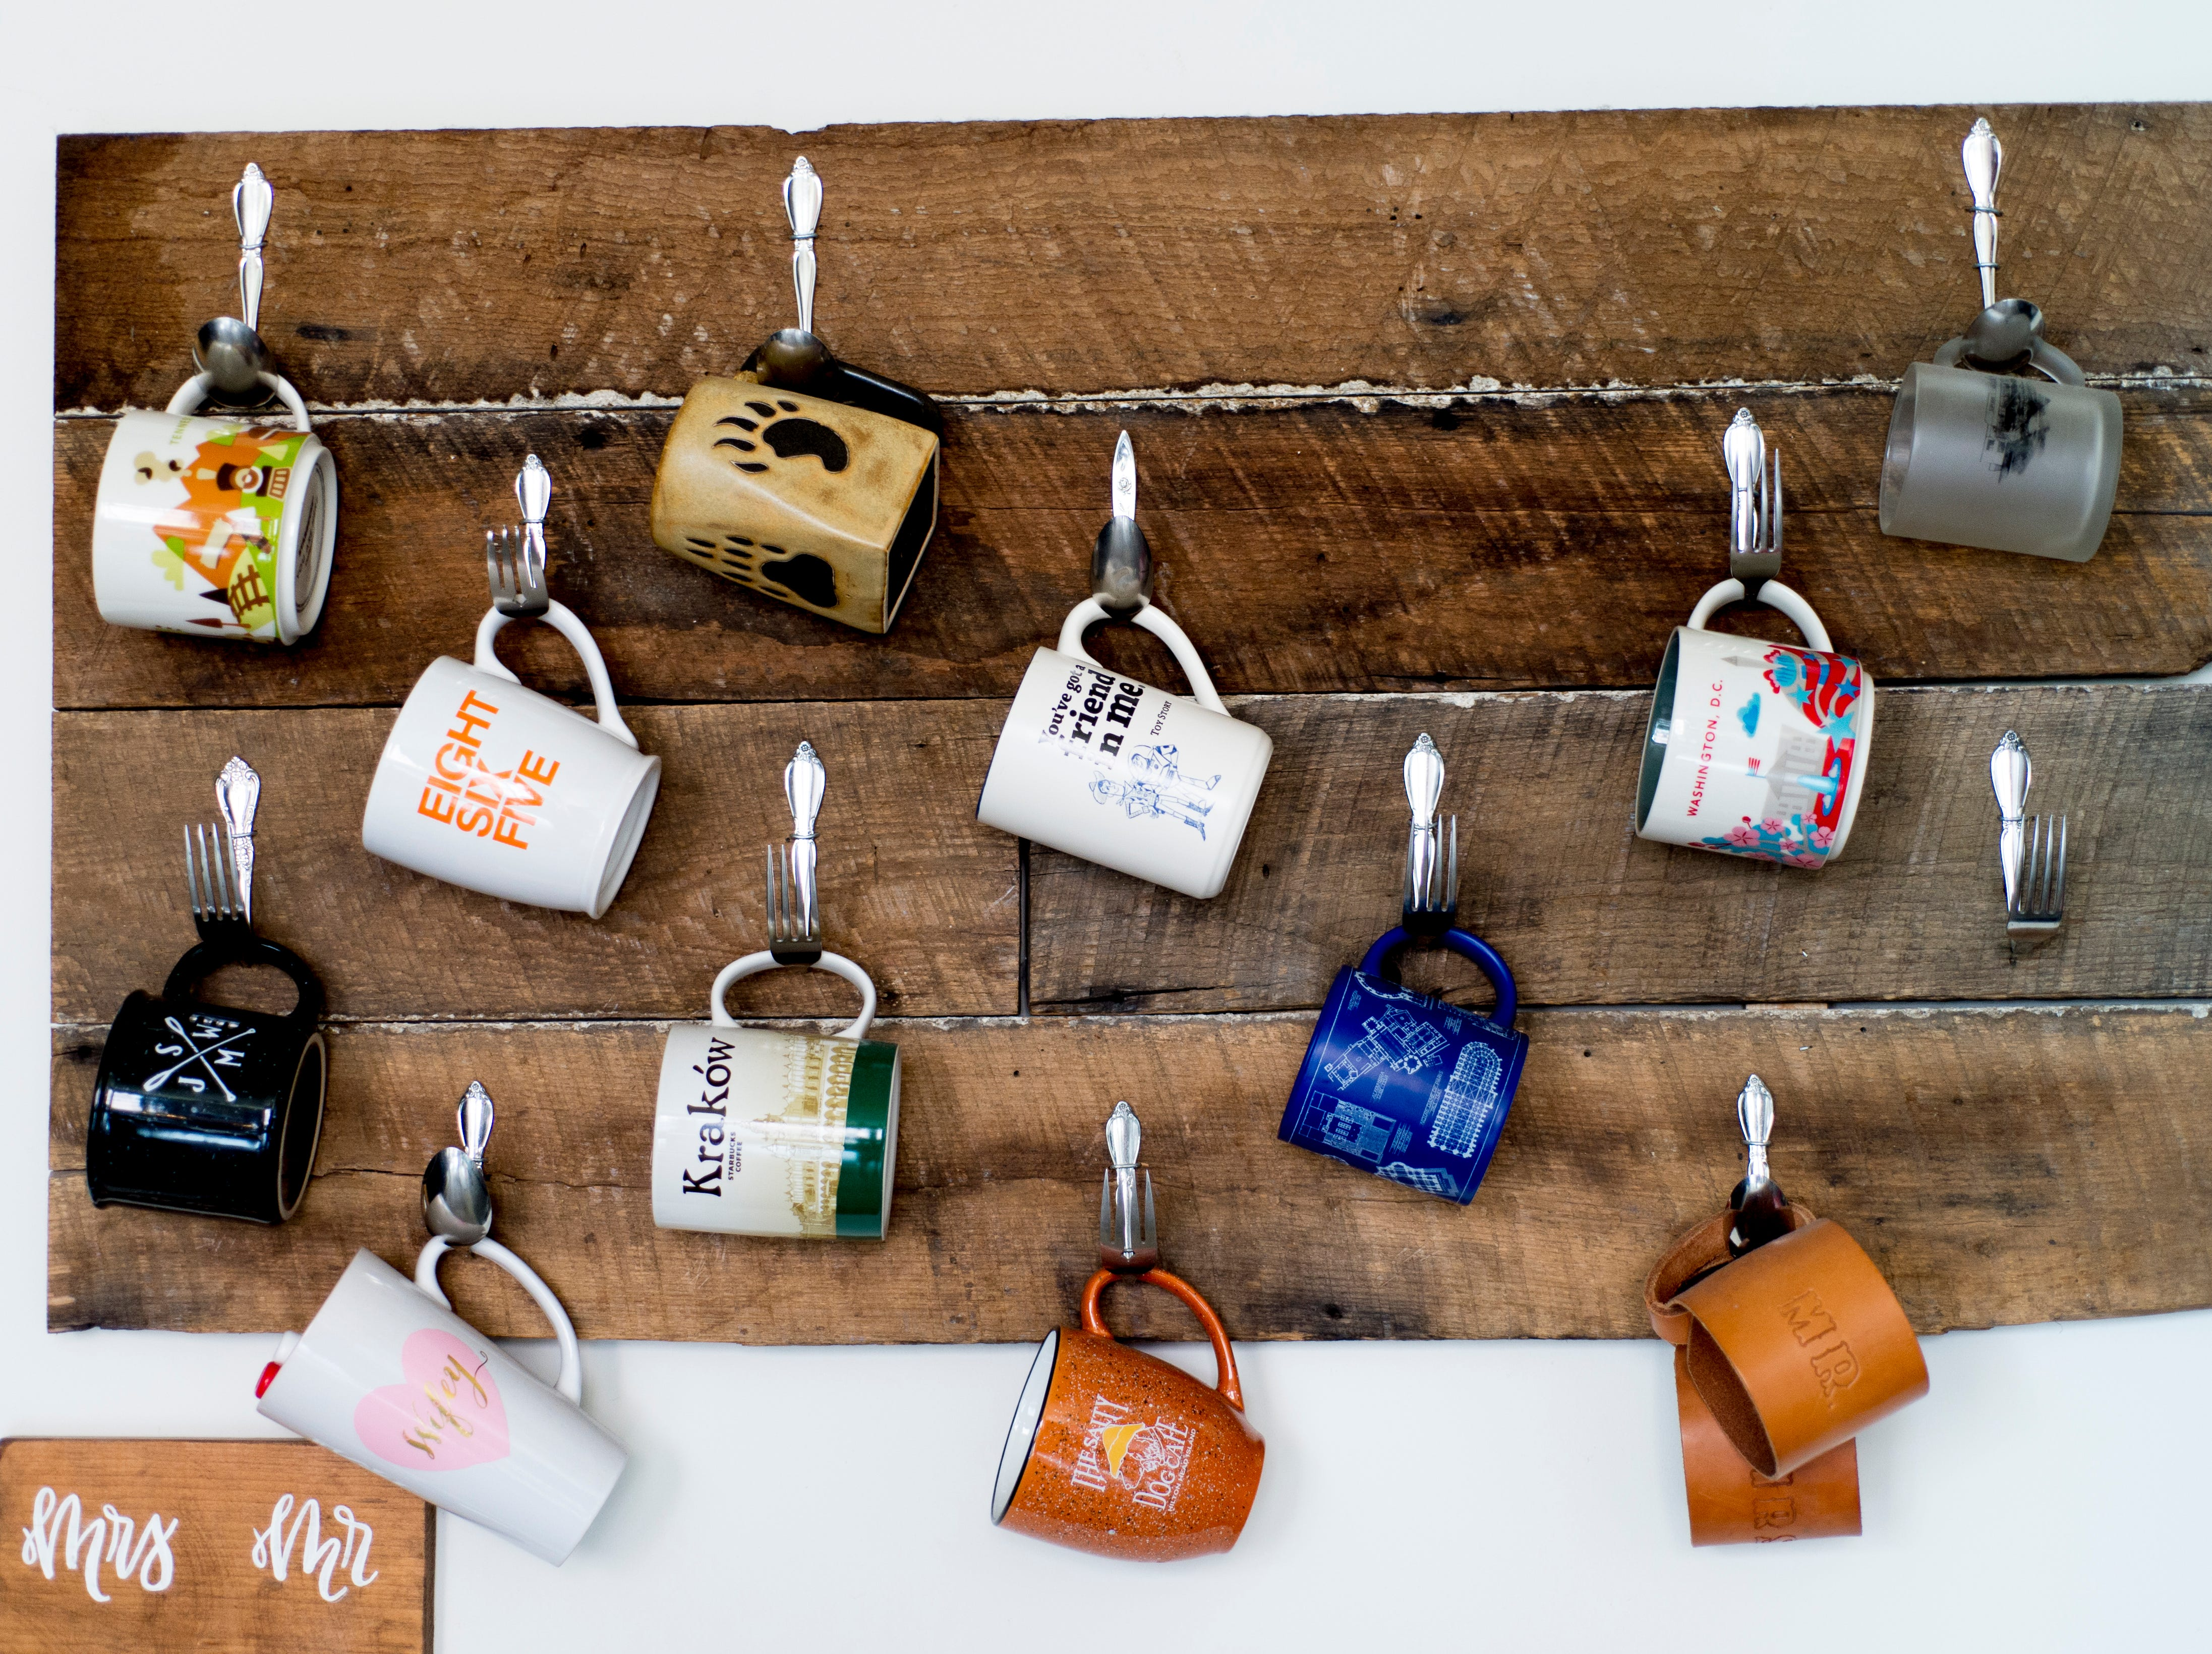 Mugs hang on the wall at the JFG loft of Logan and Katherine Higgins in Old City in downtown Knoxville, Tennessee on Saturday, August 18, 2018.